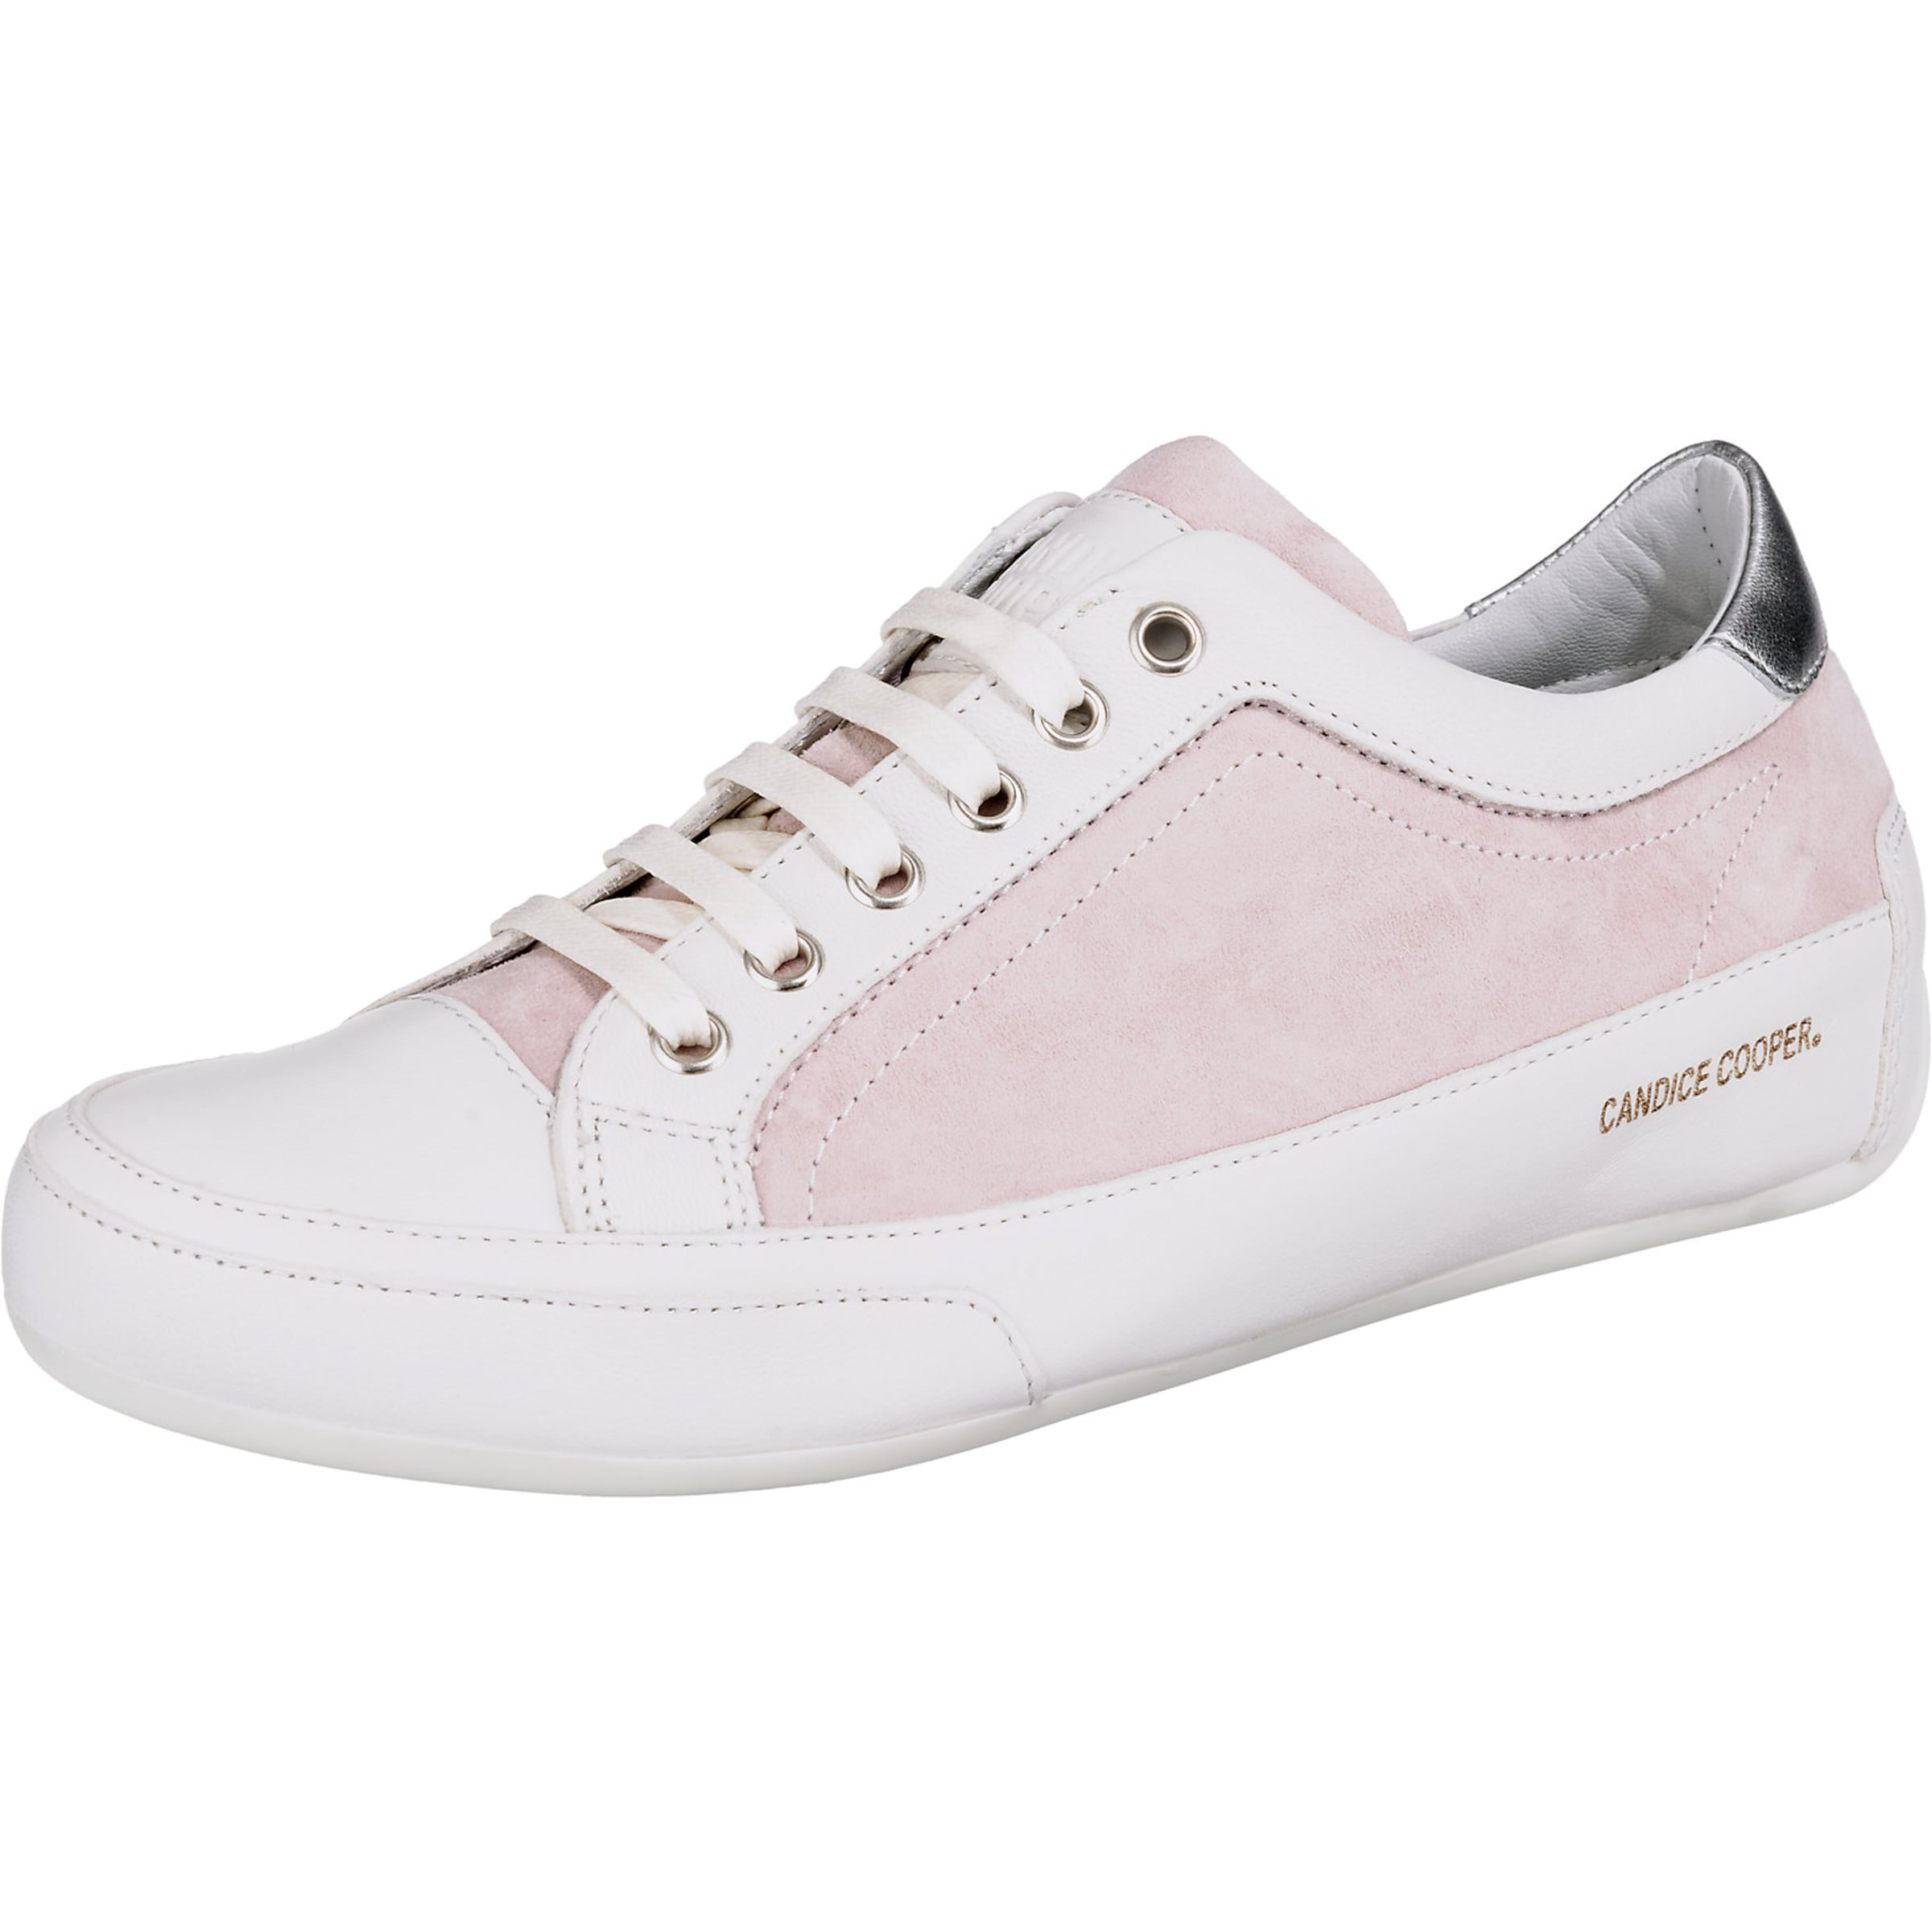 In Candice Sneakers Cooper AltrosaNaturweiß Low iOXZkTuP